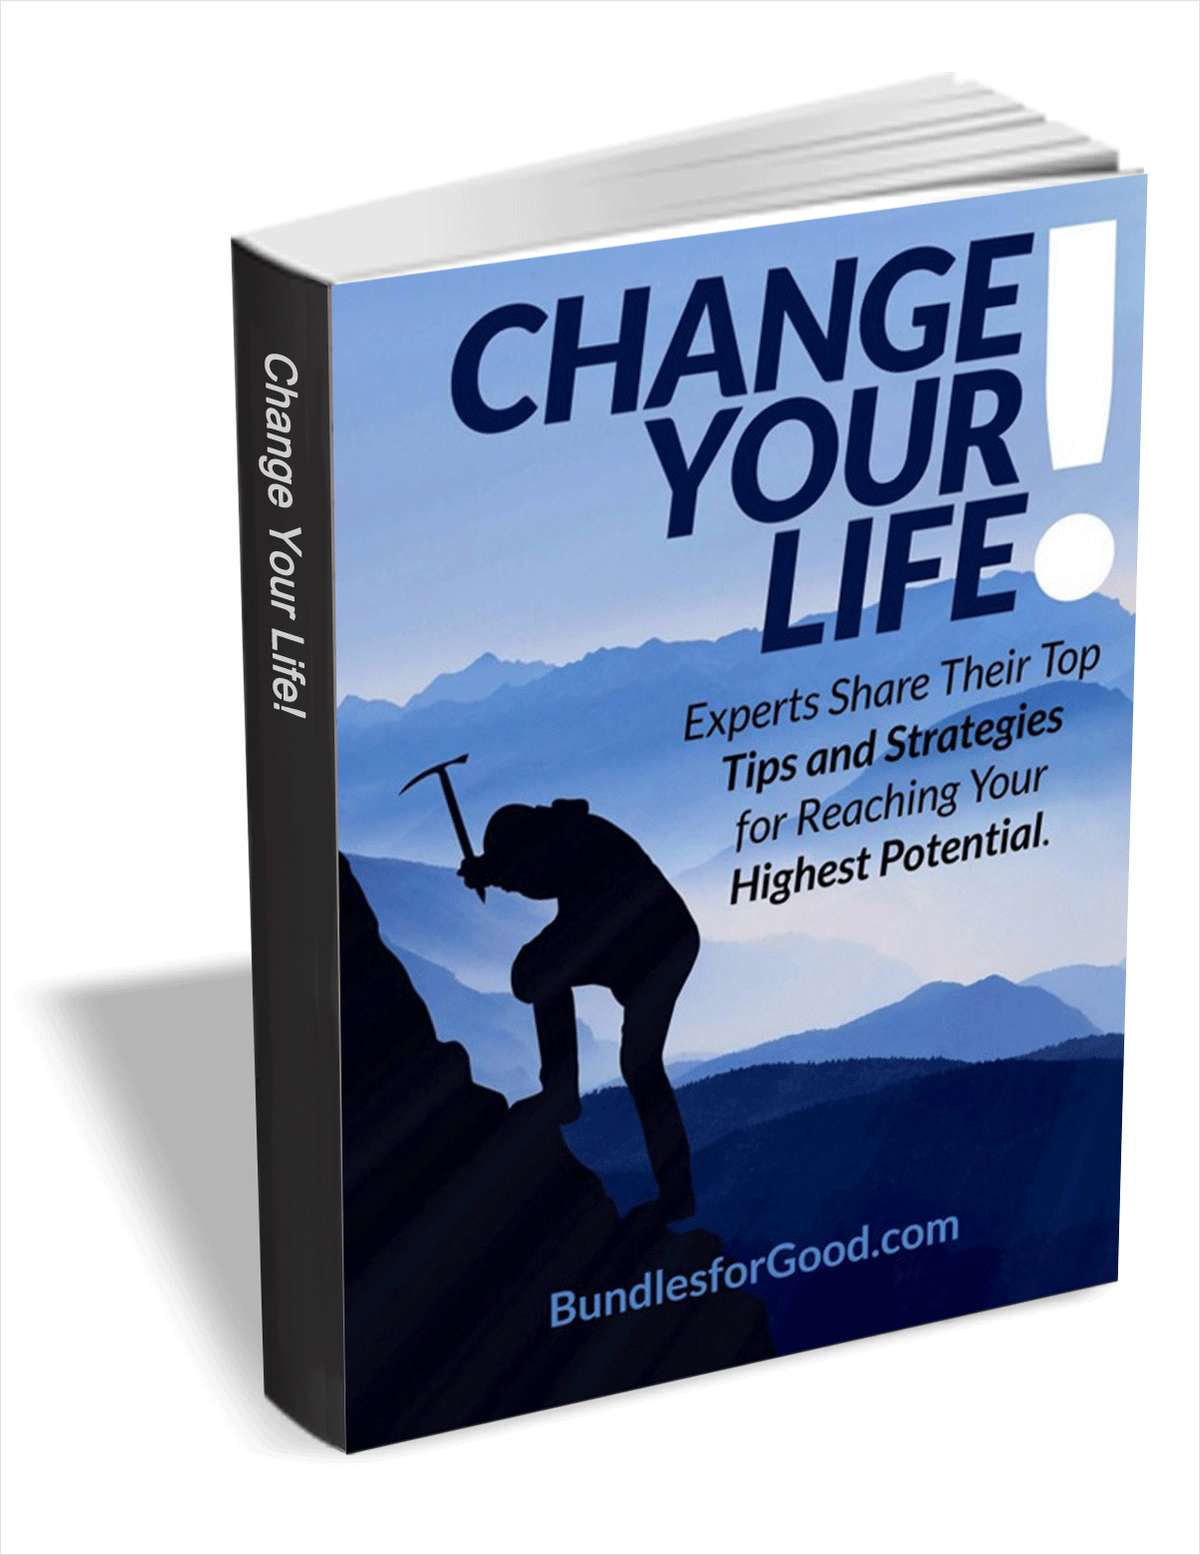 Change Your Life! Experts Share Their Top Tips and Strategies for Reaching Your Highest Potential